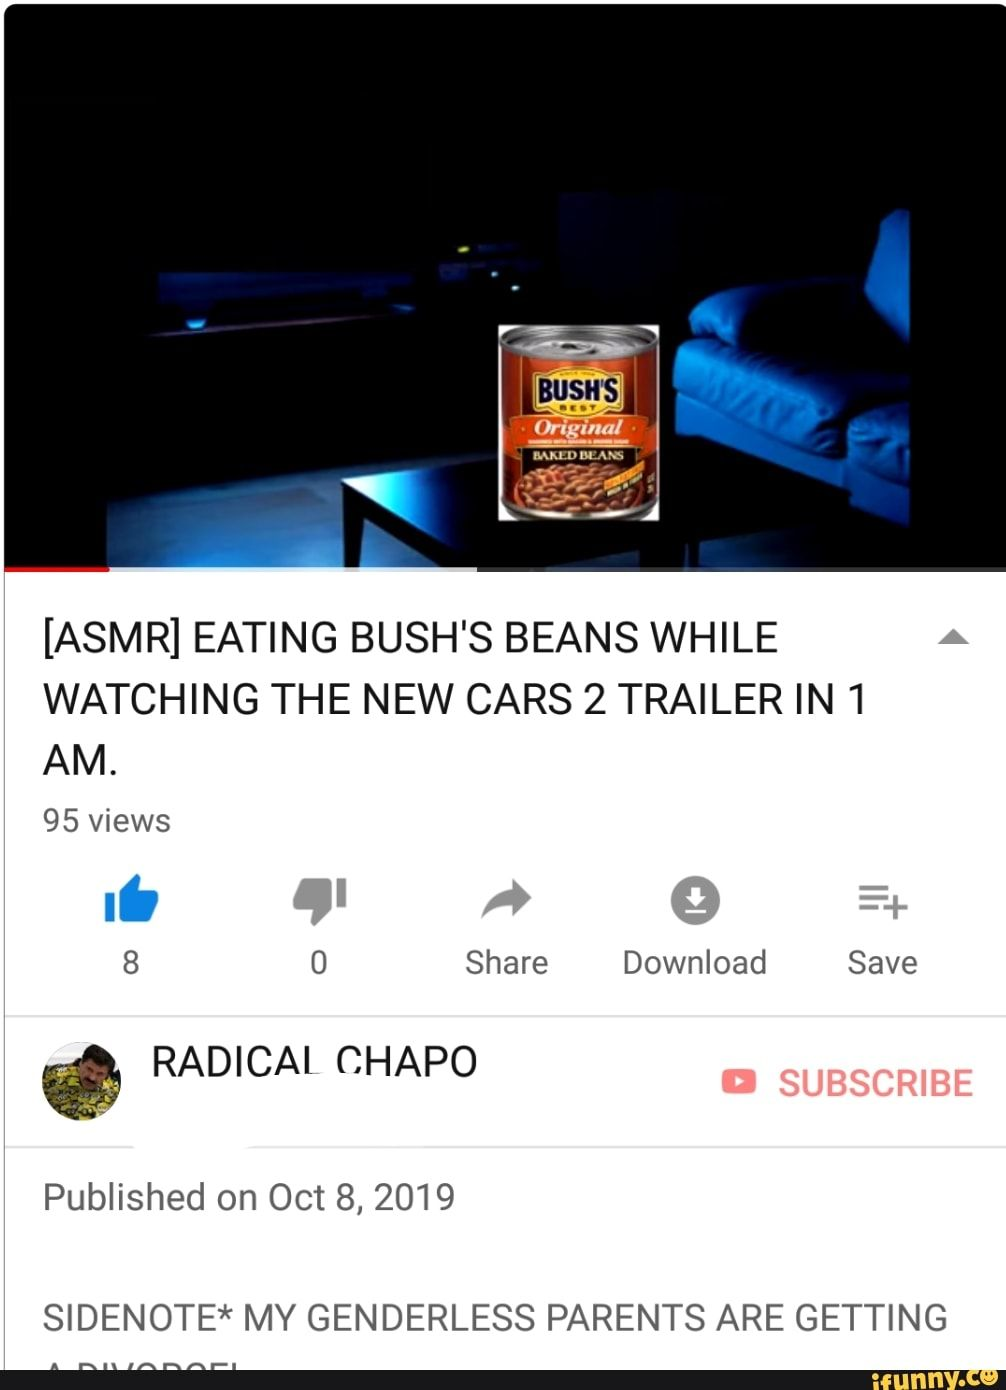 Asmr Eating Bush S Beans While Watching The New Cars 2 Trailer